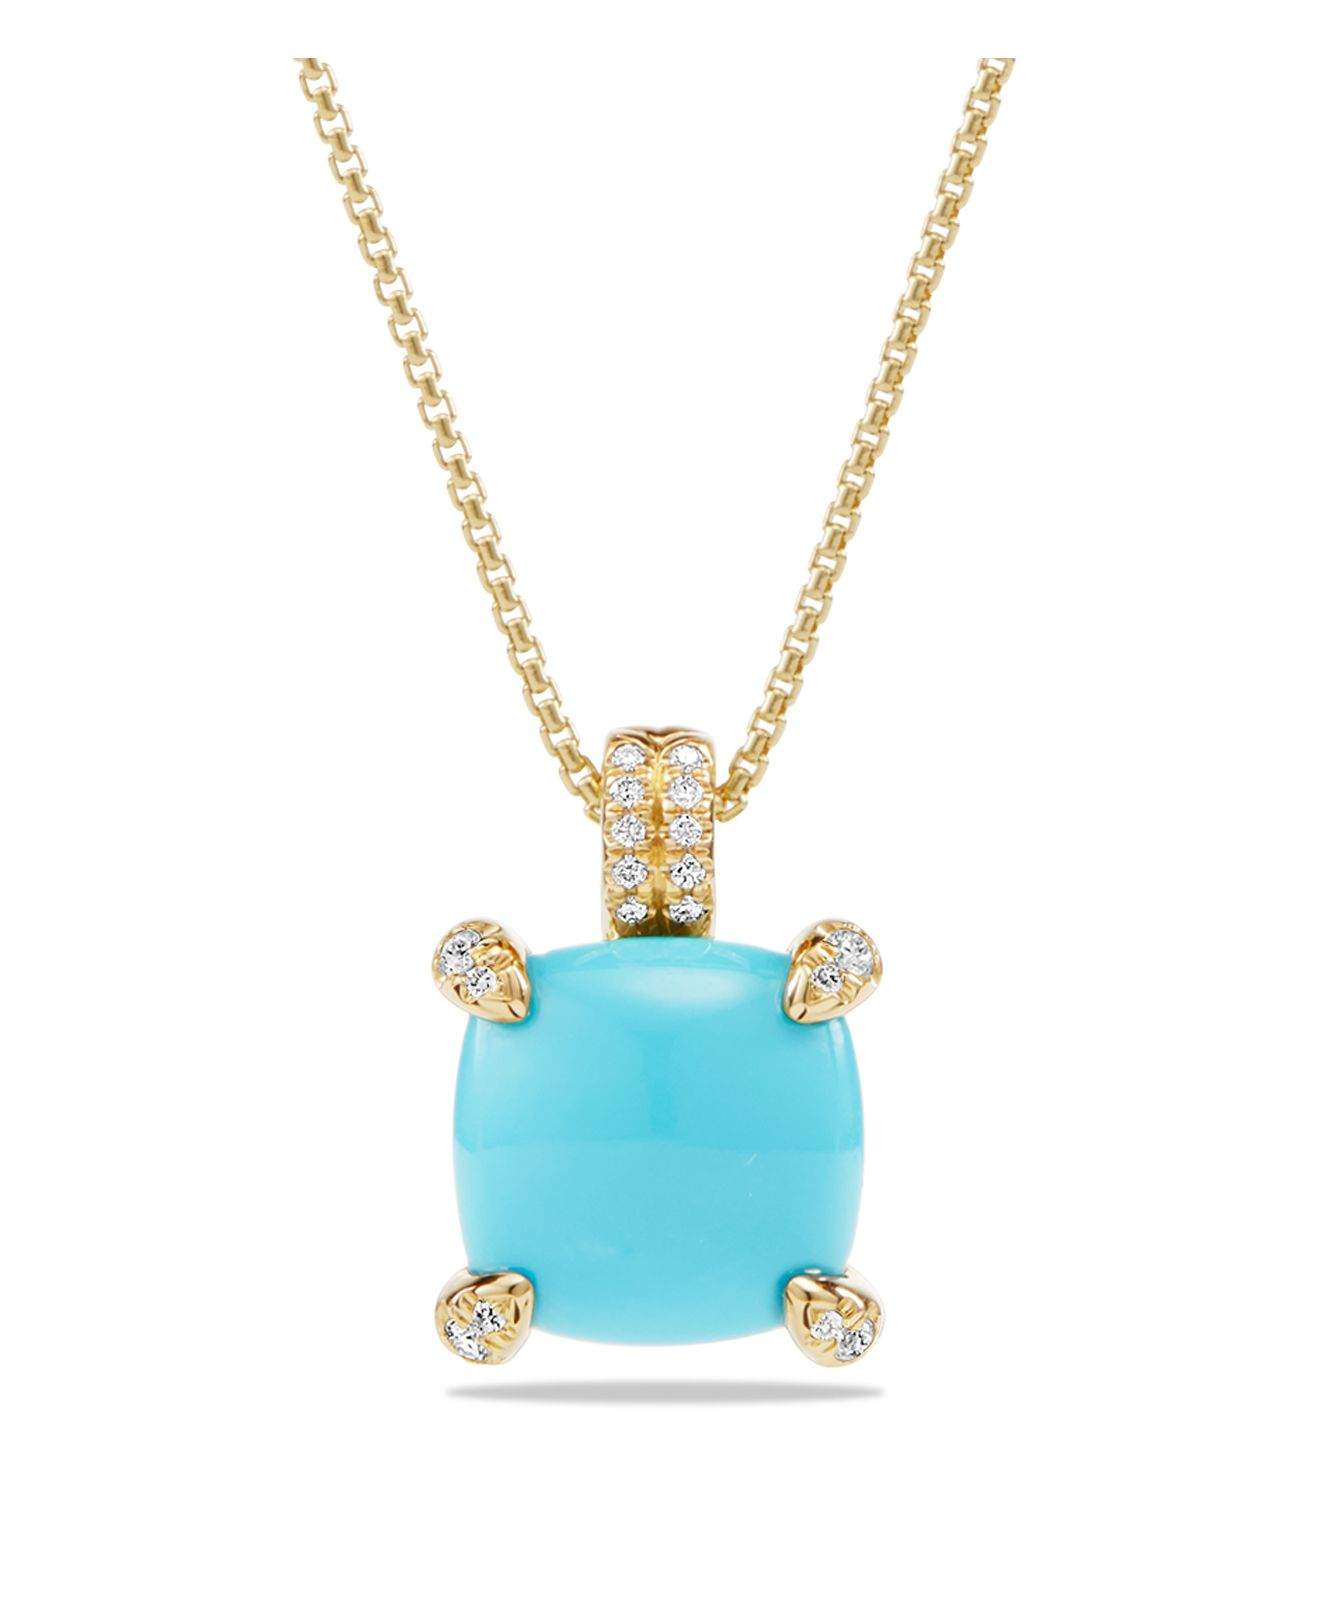 david yurman ch226telaine pendant necklace with turquoise